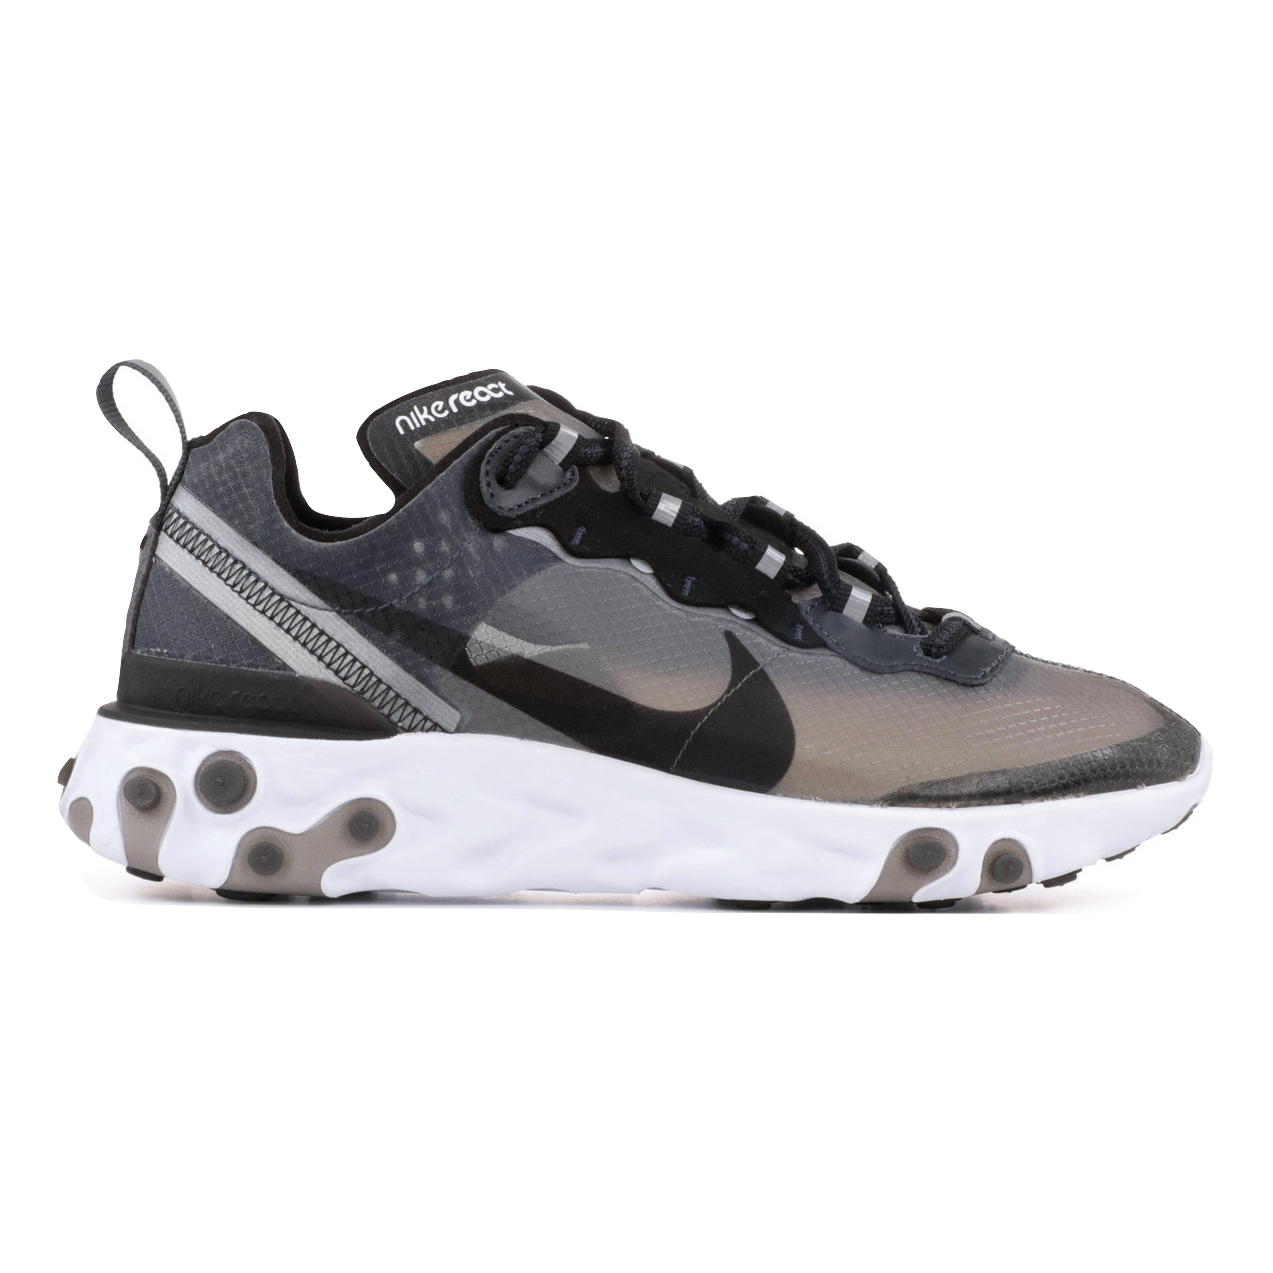 Nike React Element 87 - Anthracite